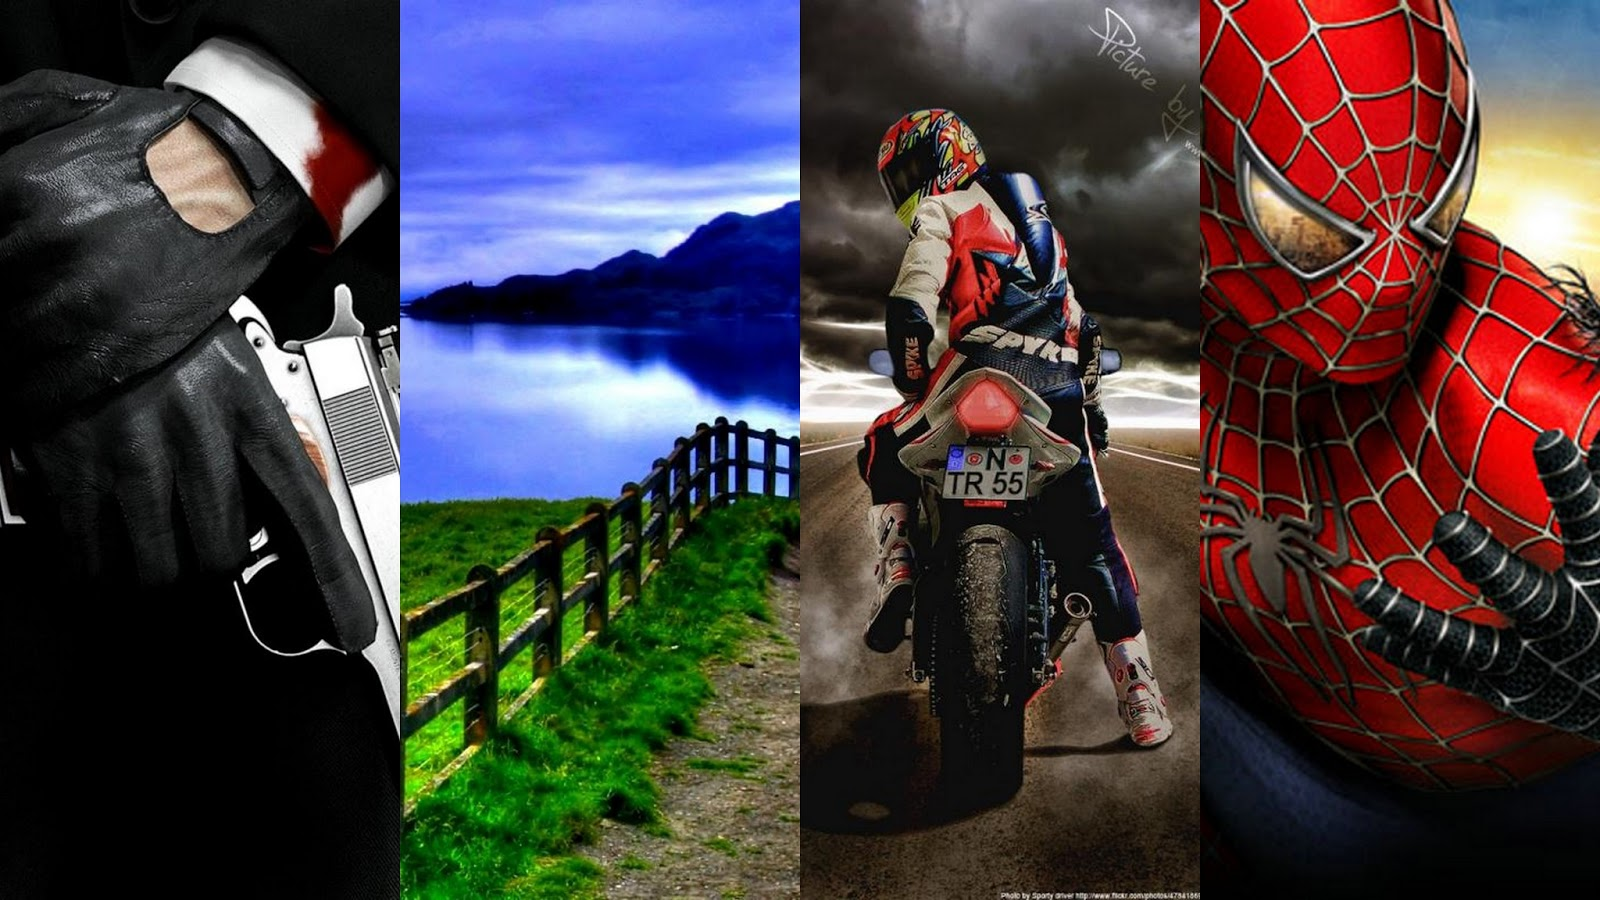 Hd wallpaper pack download - Download 480x800 Abstract Hd Wallpapers Pack 1